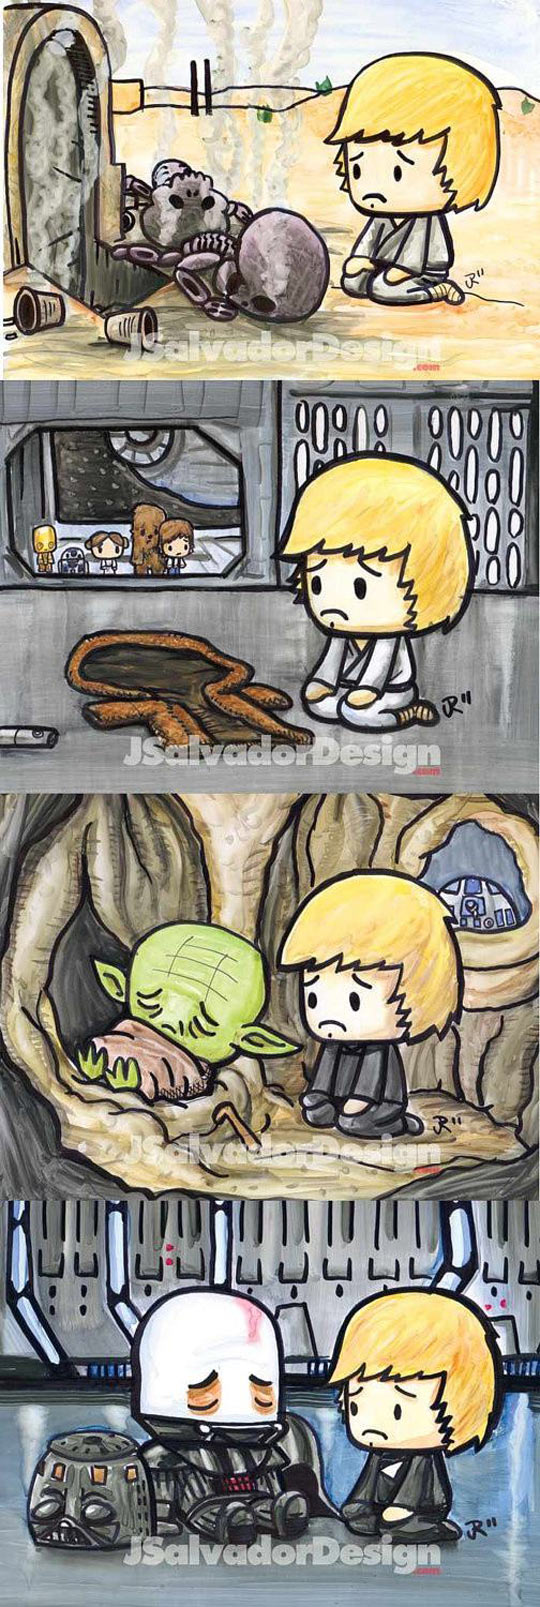 funny-Luke-Skywalker-death-family-comic